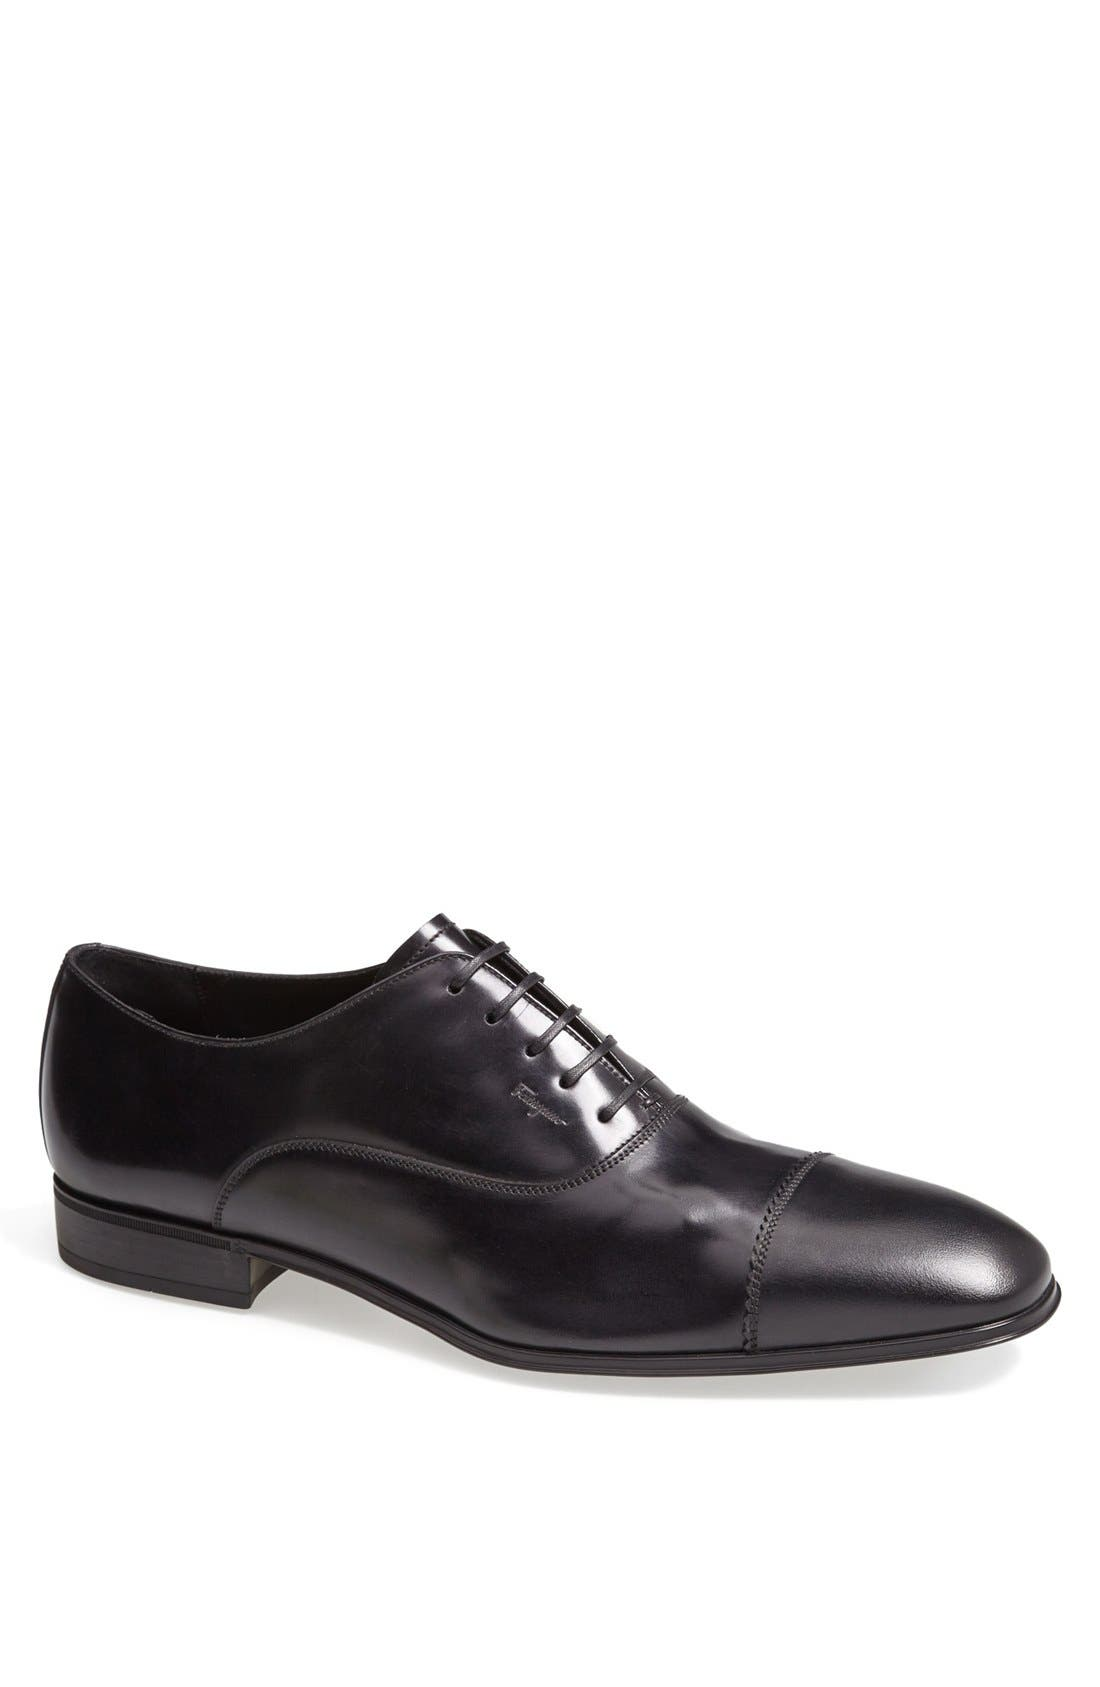 Main Image - Salvatore Ferragamo 'Remigio' Cap Toe Oxford (Men)